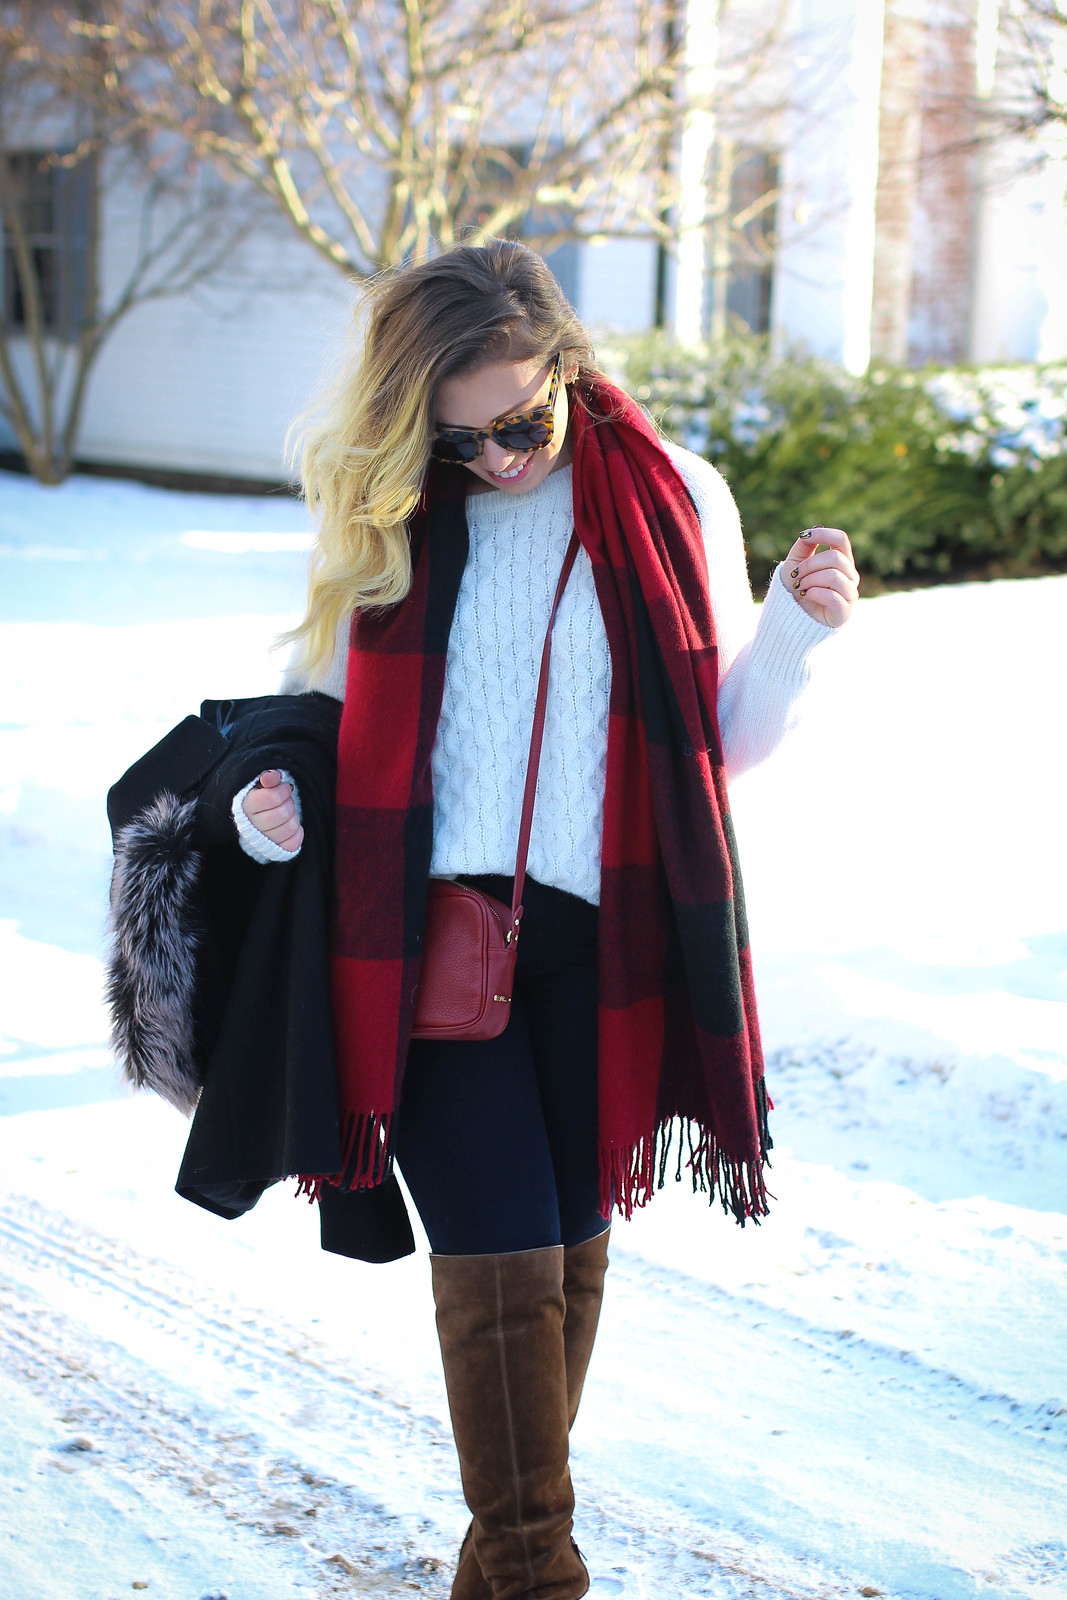 Casual winter outfit in snow. White cable knit sweater, red plaid blanket scarf, OTK brown suede boots.